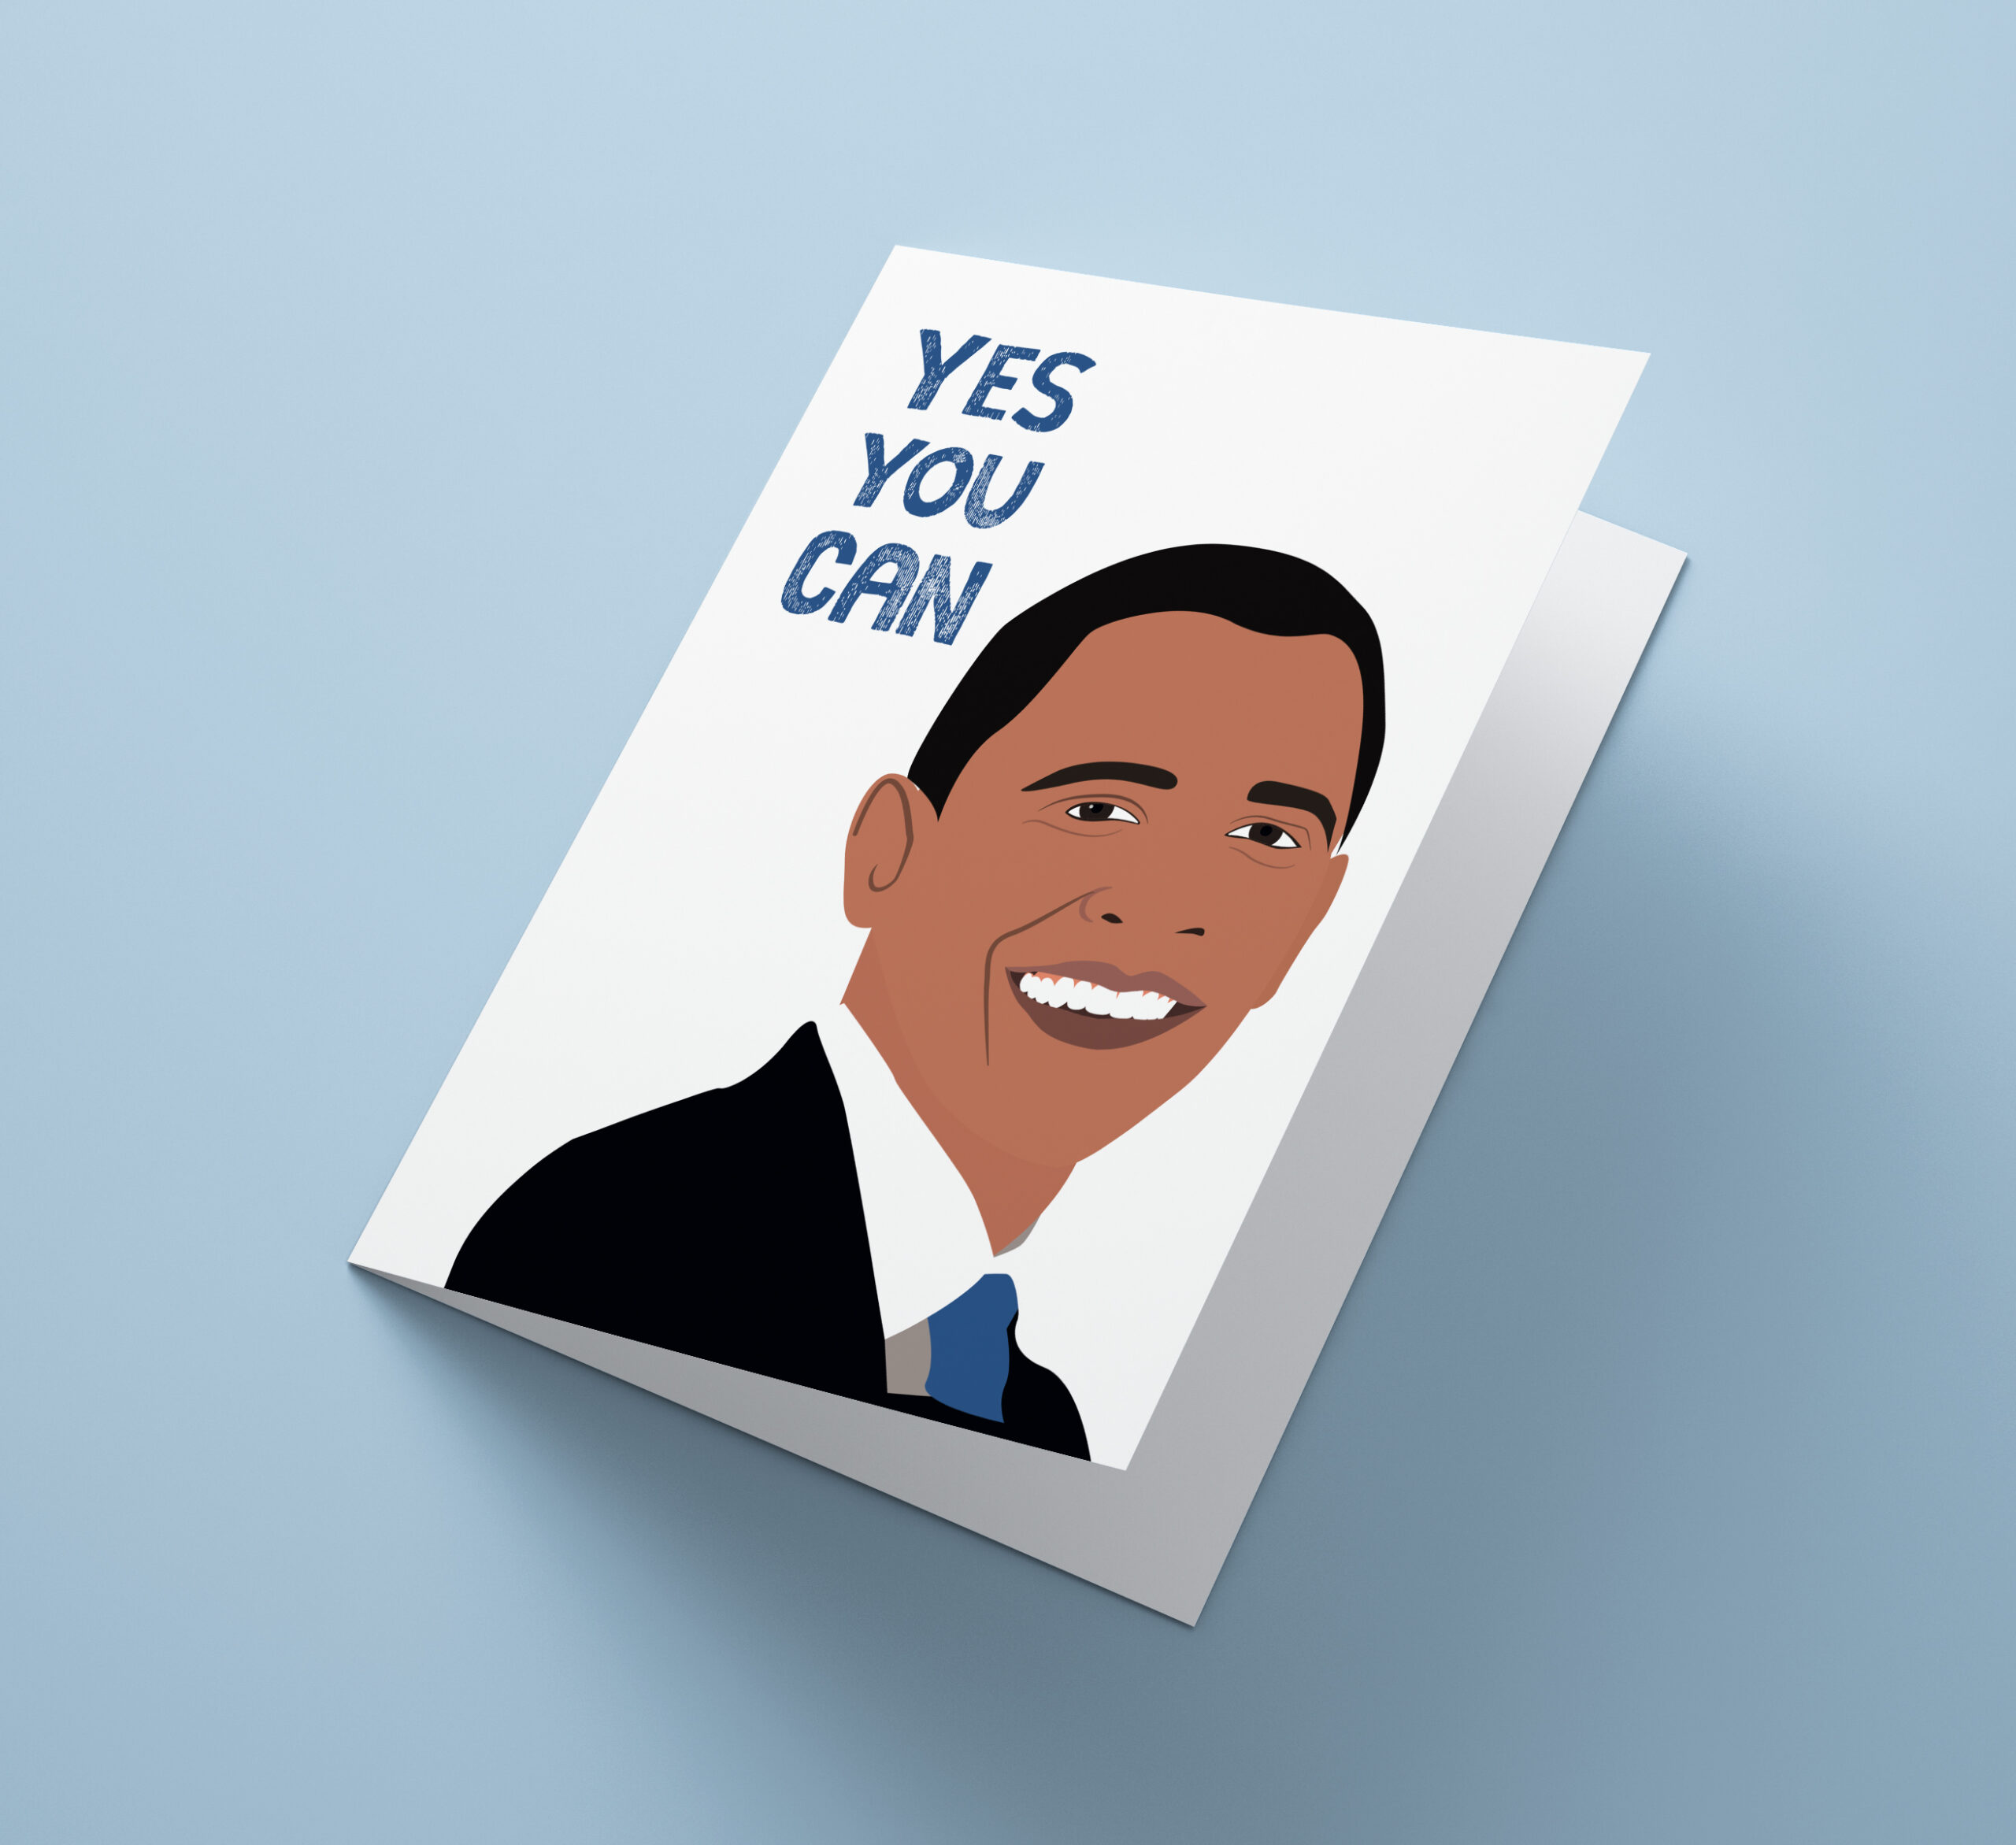 Yes You Can - Obama